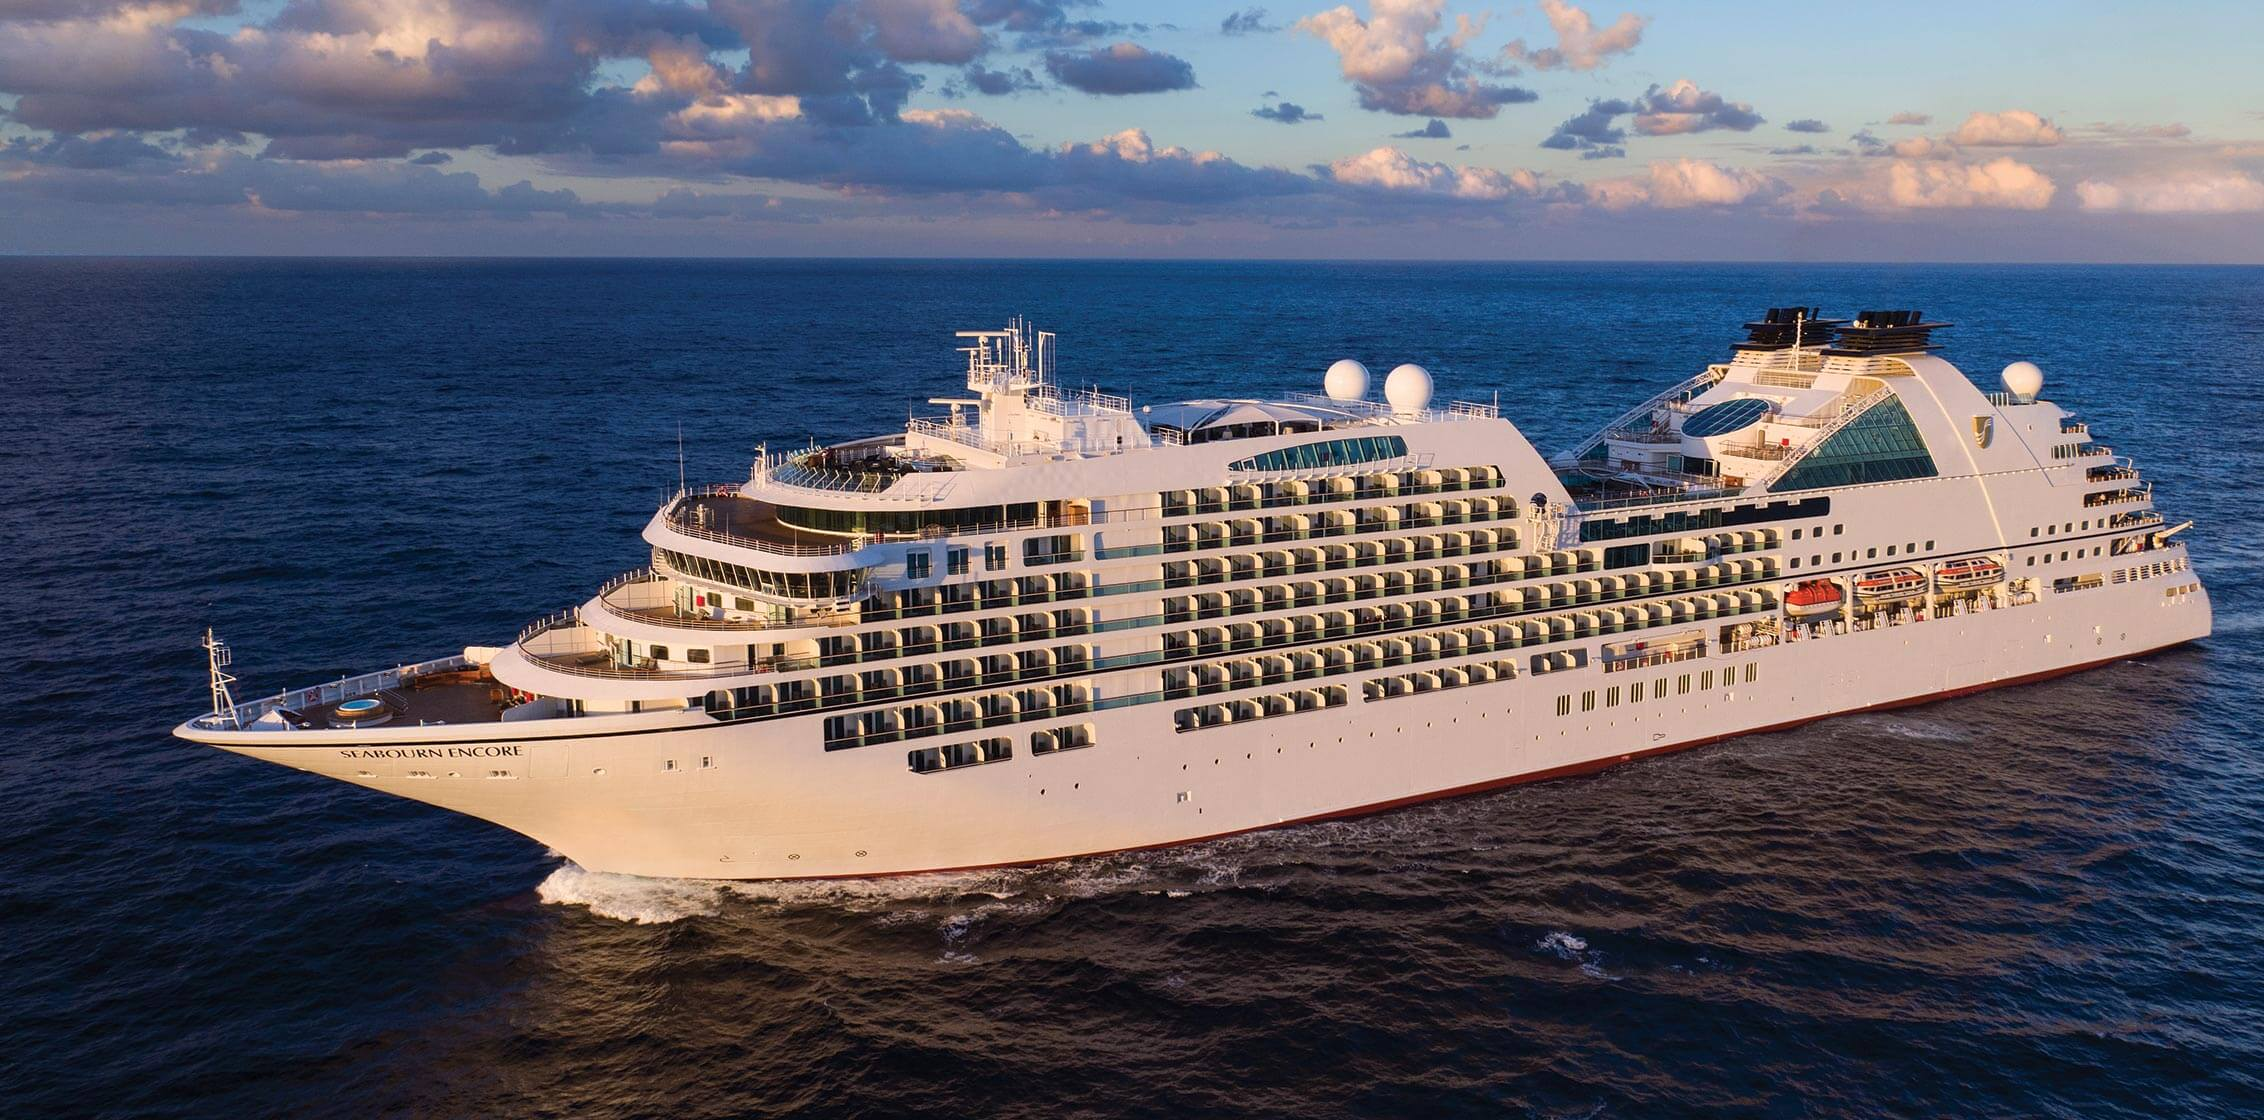 Aerial view of Seabourn Encore